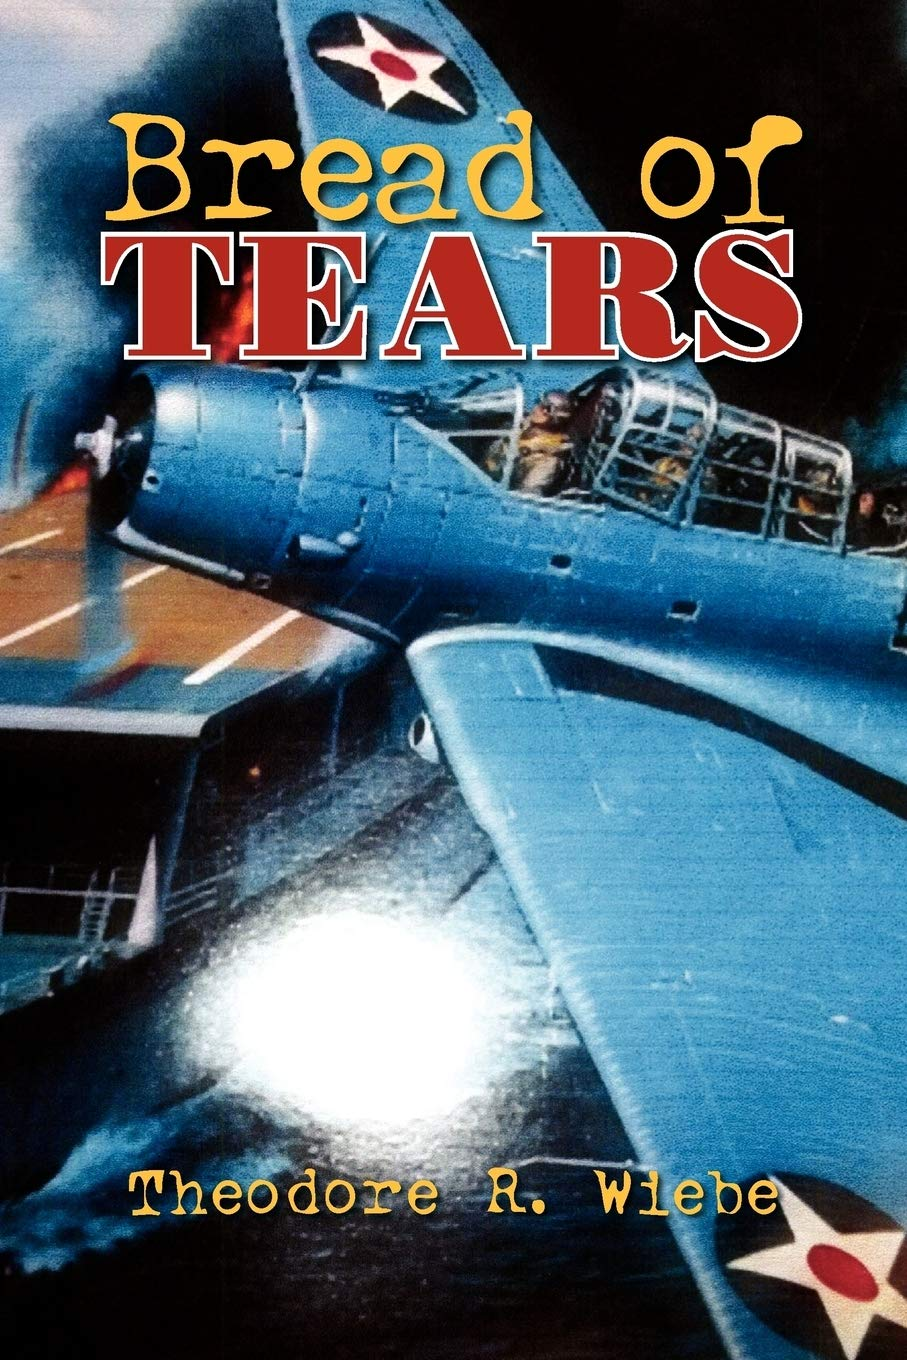 """Bread of Tears"" by Theodore R. Wiebe is an Adventure and Wartime Story Unlike Any Other"